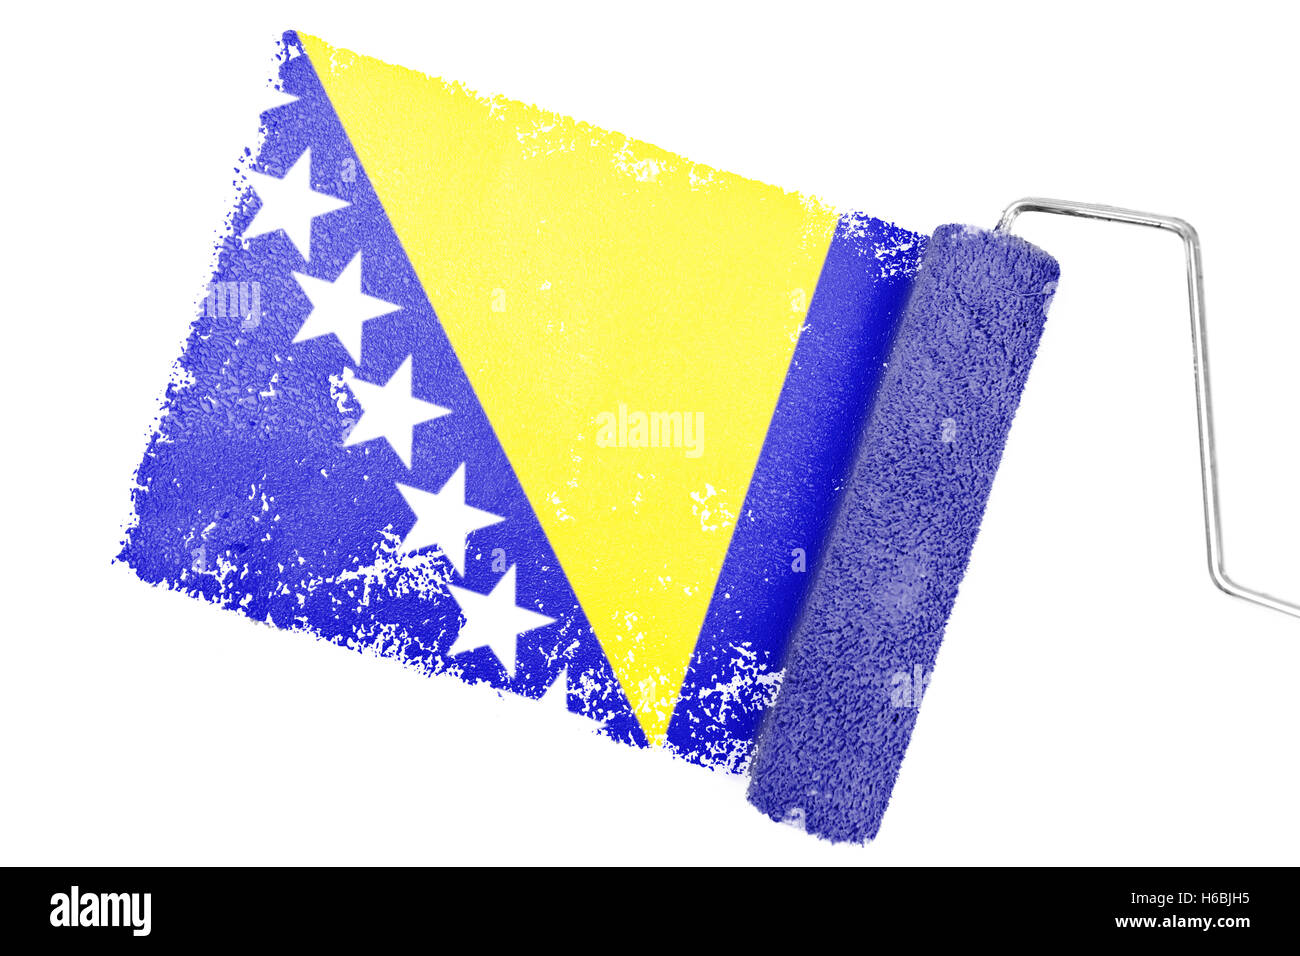 Composite image of bosnia national flag - Stock Image